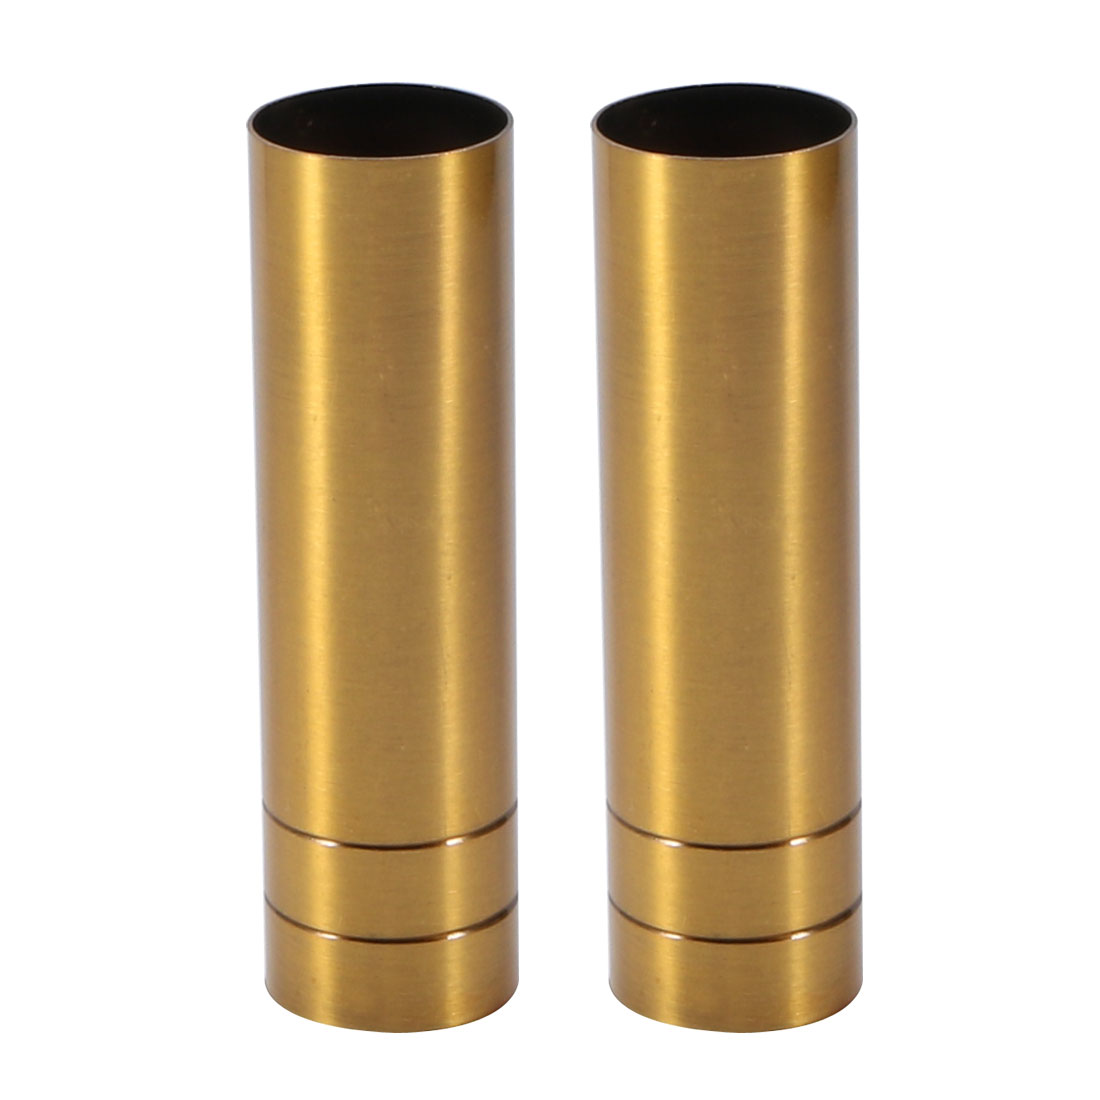 2pcs 25mmx100mm Brass Tone Metal Candle Cover Sleeves Chandelier Socket Covers